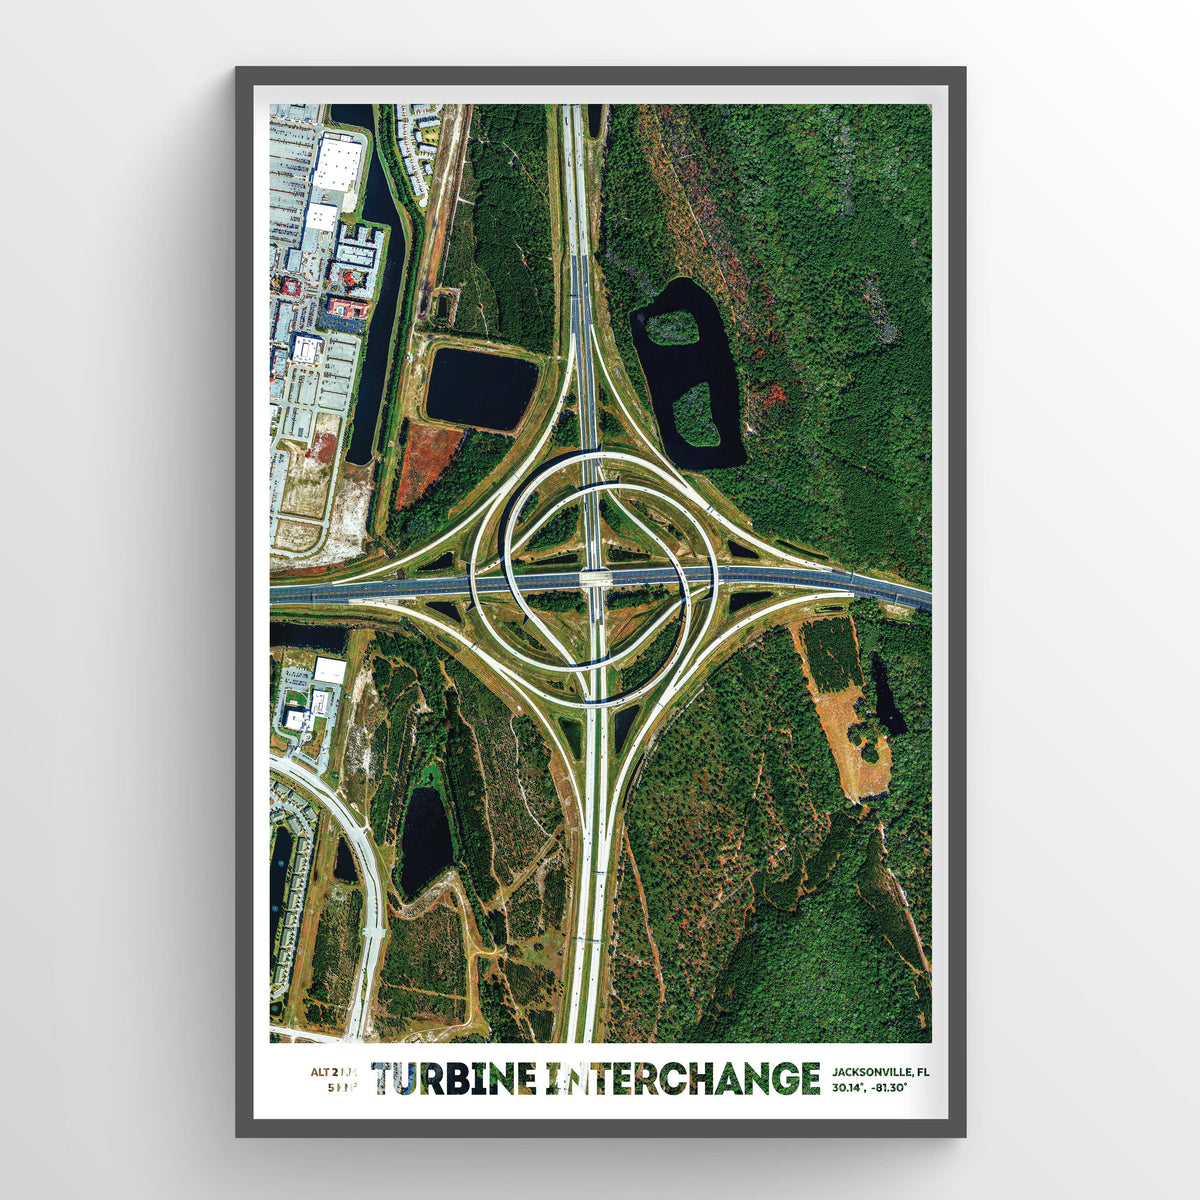 Turbine Interchange - Earth Photography Fine Art Print